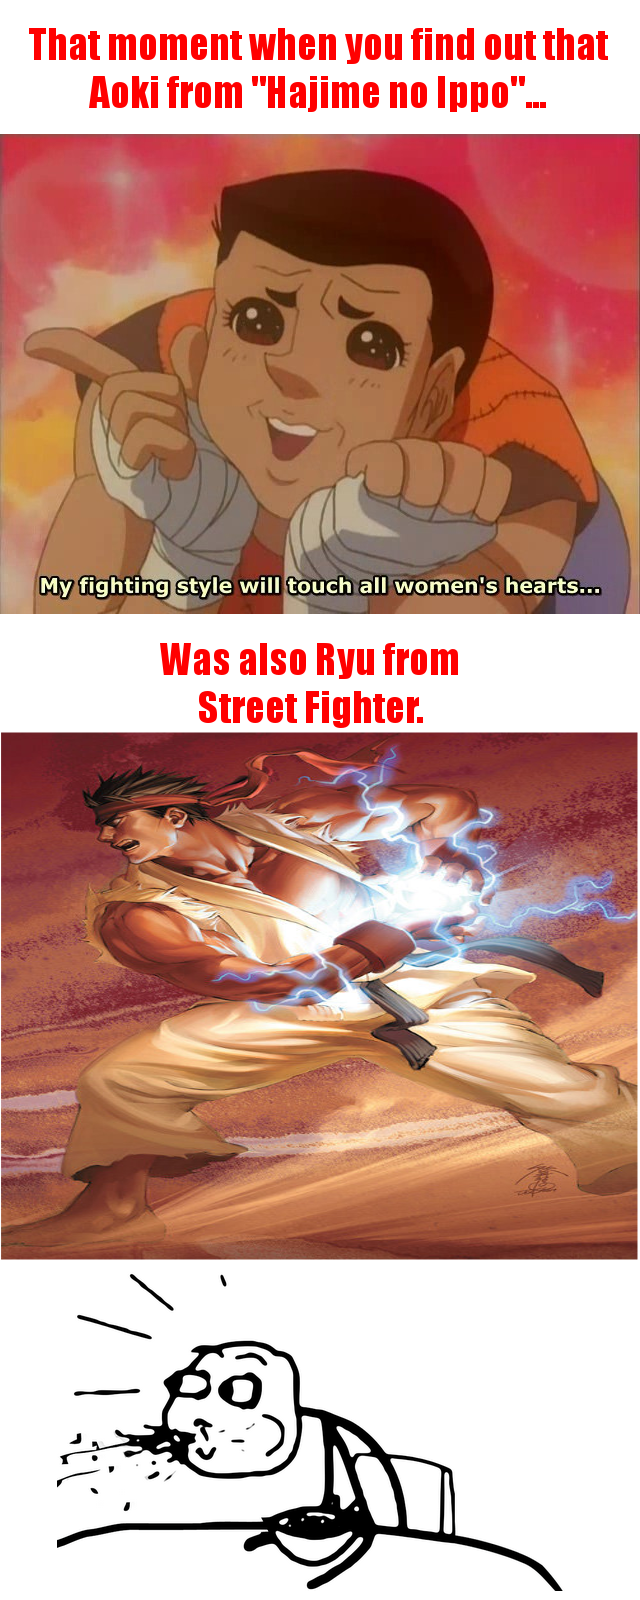 Though To Be Fair, Aoki Is Just As Manly